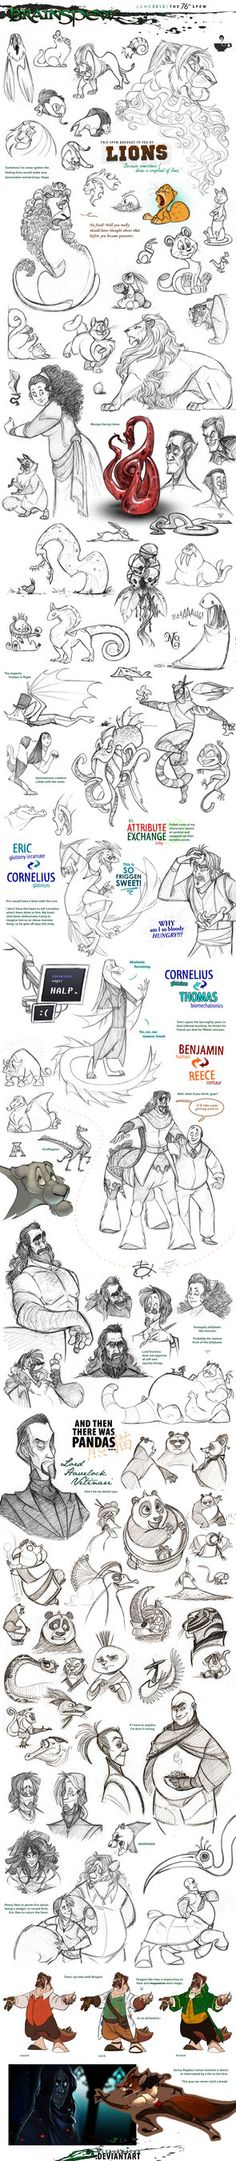 BrainSpew the by PookaDoodle on DeviantArt Cartoon Sketches, Animal Sketches, Animal Drawings, Drawing Sketches, Art Drawings, Arte Popular, Character Design References, Art Studies, Character Design Inspiration